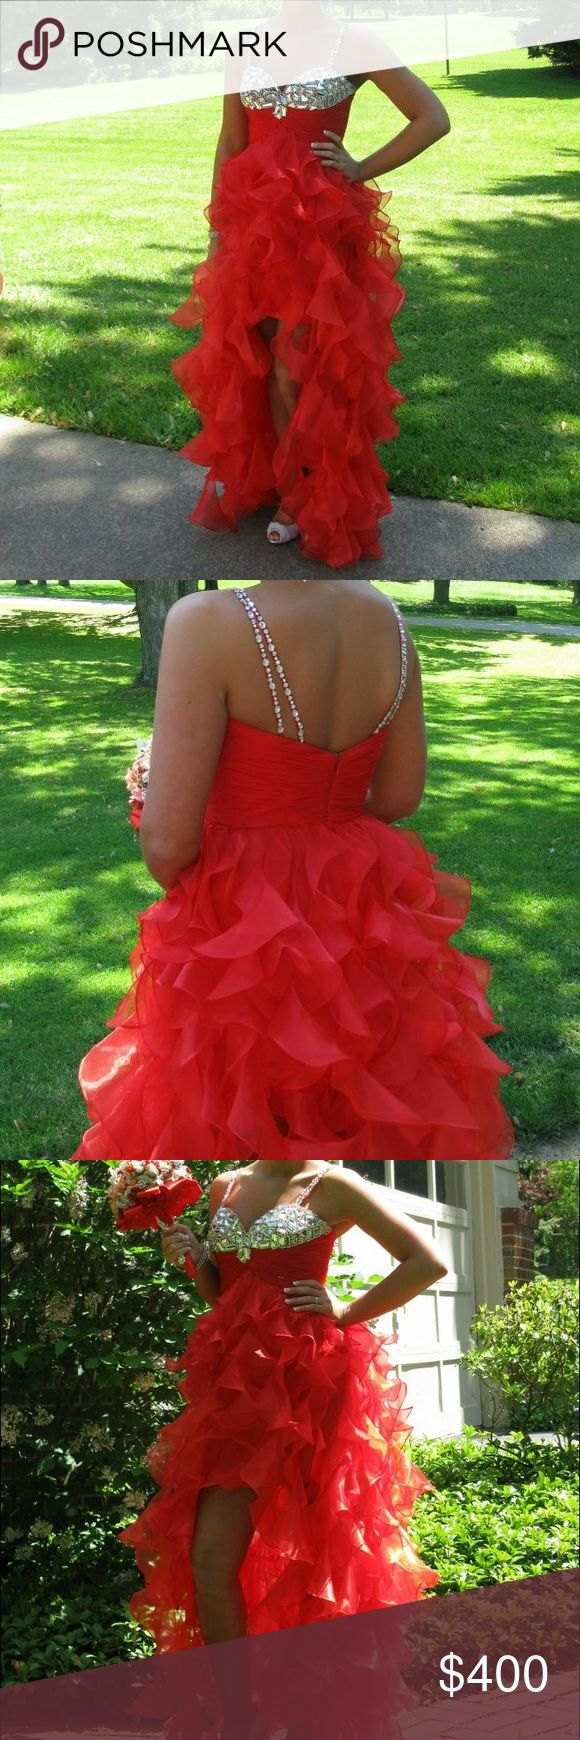 Sherri Hill Red Prom/Formal Dress Sherri Hill dress worn once. Still in great condition. Sparkles on the top and spiral ruffles on the bottom. High low type dress with opening in the front. Small straps to help keep it up! Sherri Hill Dresses Prom